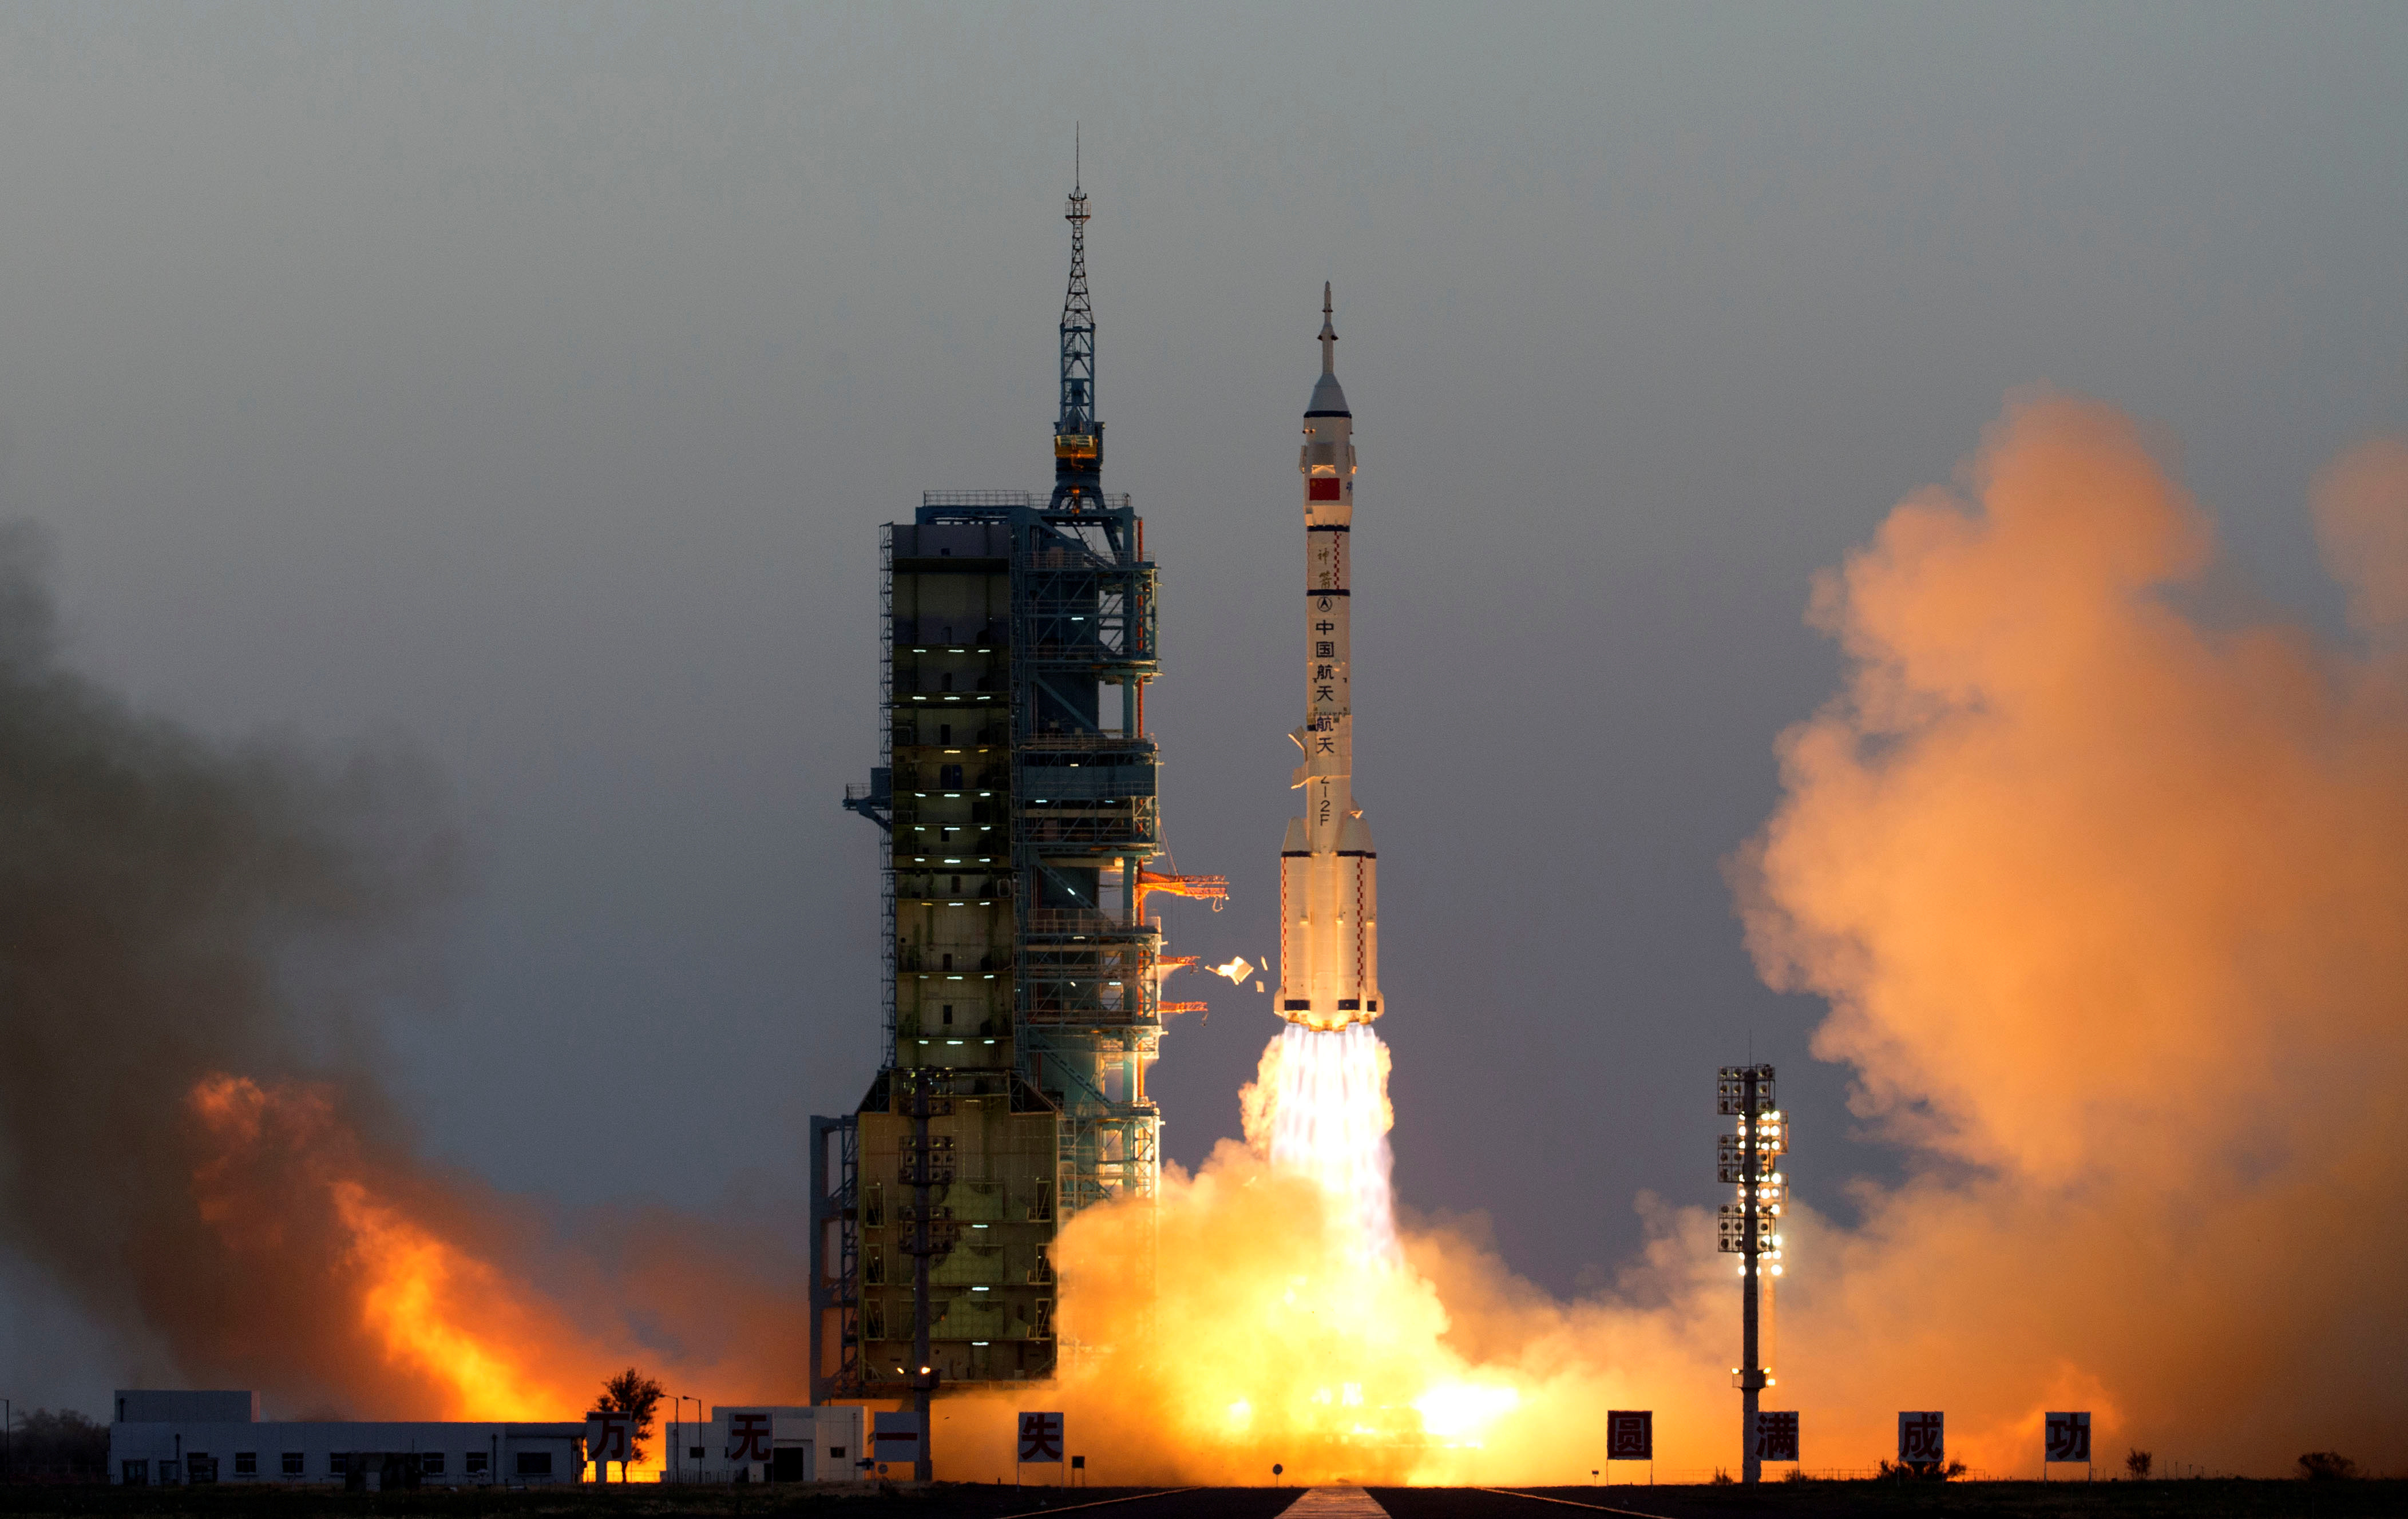 Shenzhou-11 manned spacecraft carrying astronauts Jing Haipeng and Chen Dong blasts off from the launchpad in Jiuquan, China, October 17, 2016. China Daily/via REUTERS ATTENTION EDITORS - THIS PICTURE WAS PROVIDED BY A THIRD PARTY. EDITORIAL USE ONLY. CHINA OUT. NO COMMERCIAL OR EDITORIAL SALES IN CHINA.     TPX IMAGES OF THE DAY - RTX2P2ZZ